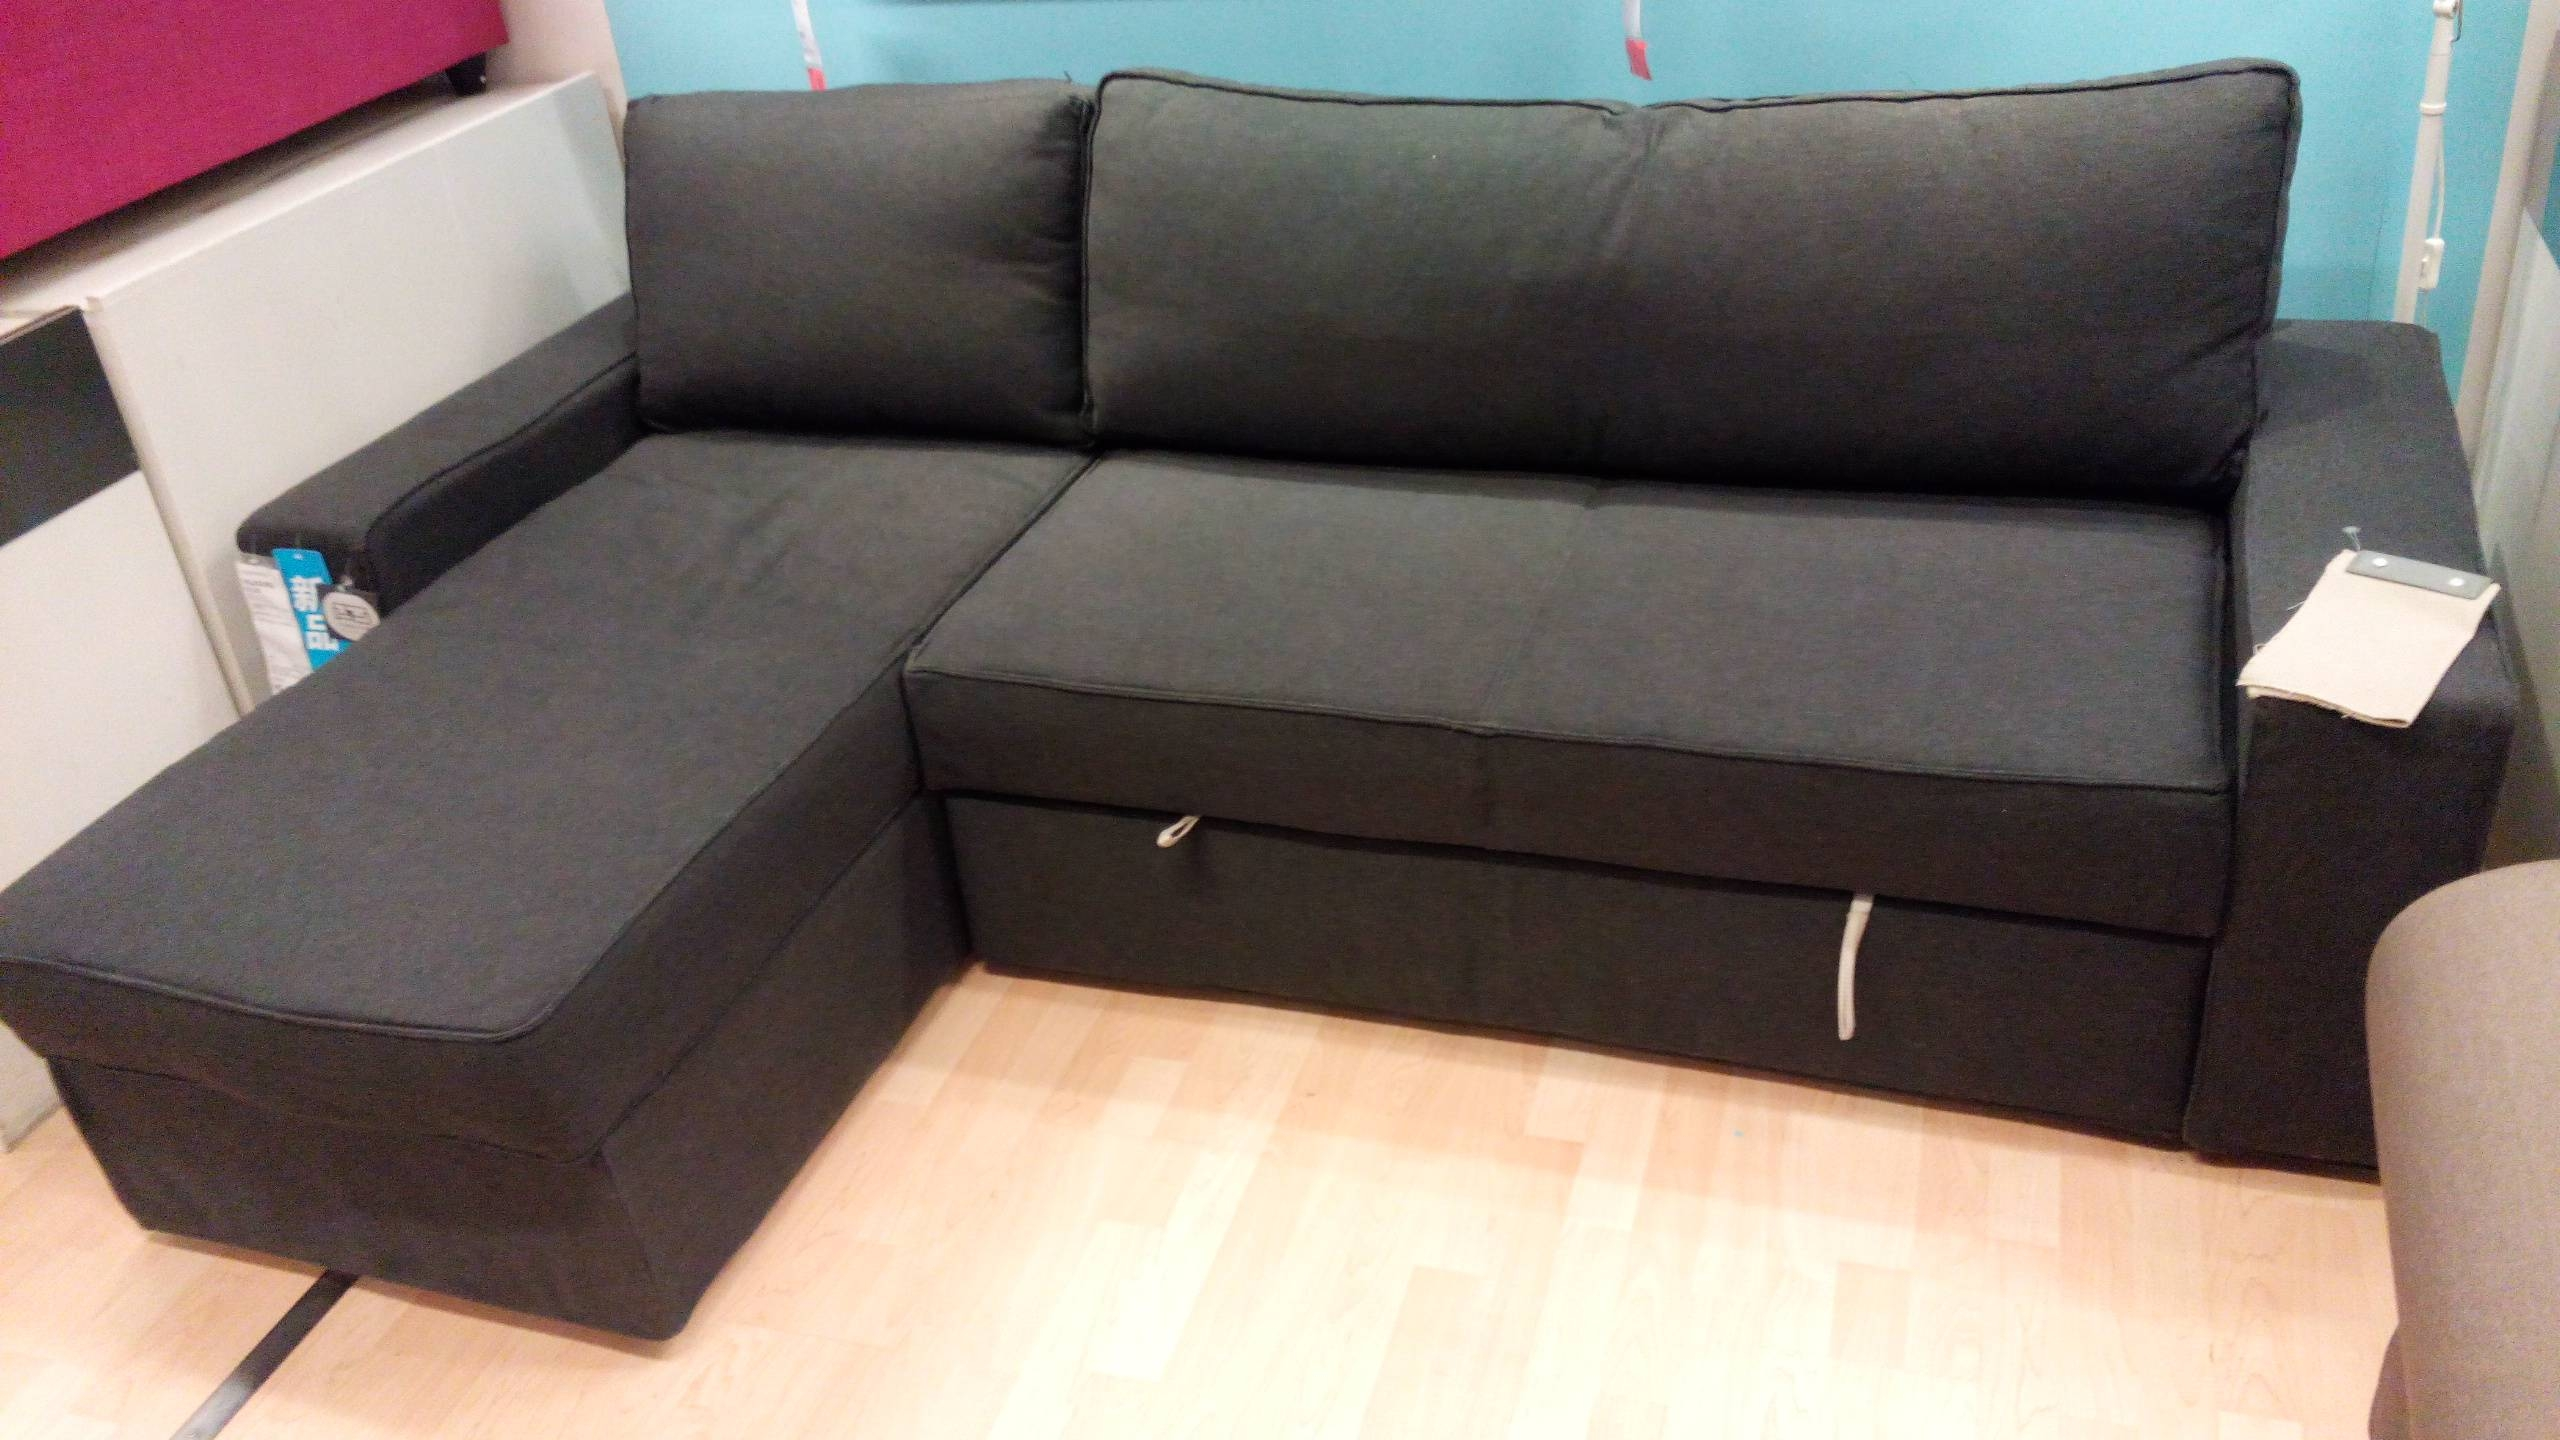 Fresh Manstad Sectional Sofa Bed Storage From Ikea 42 For Your throughout Manstad Sofa Bed Ikea (Image 2 of 25)